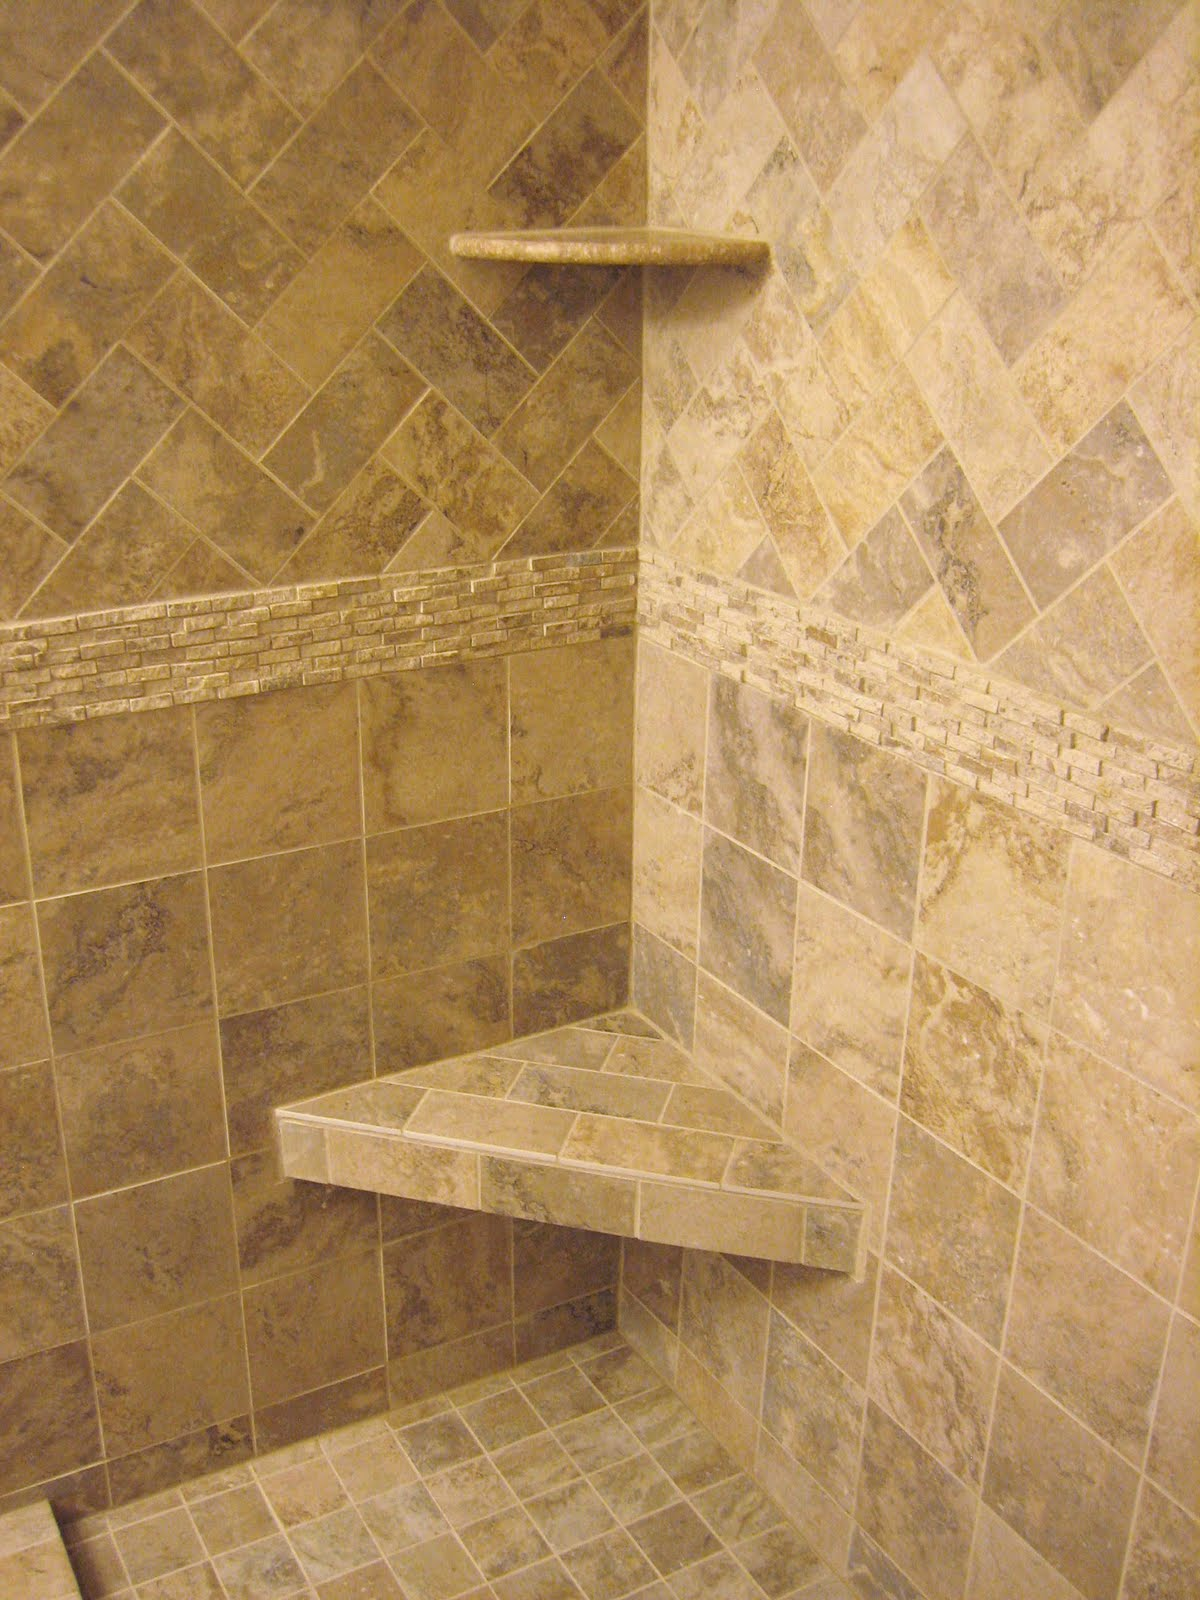 H winter showroom blog june 2010 for Bathroom tiles design